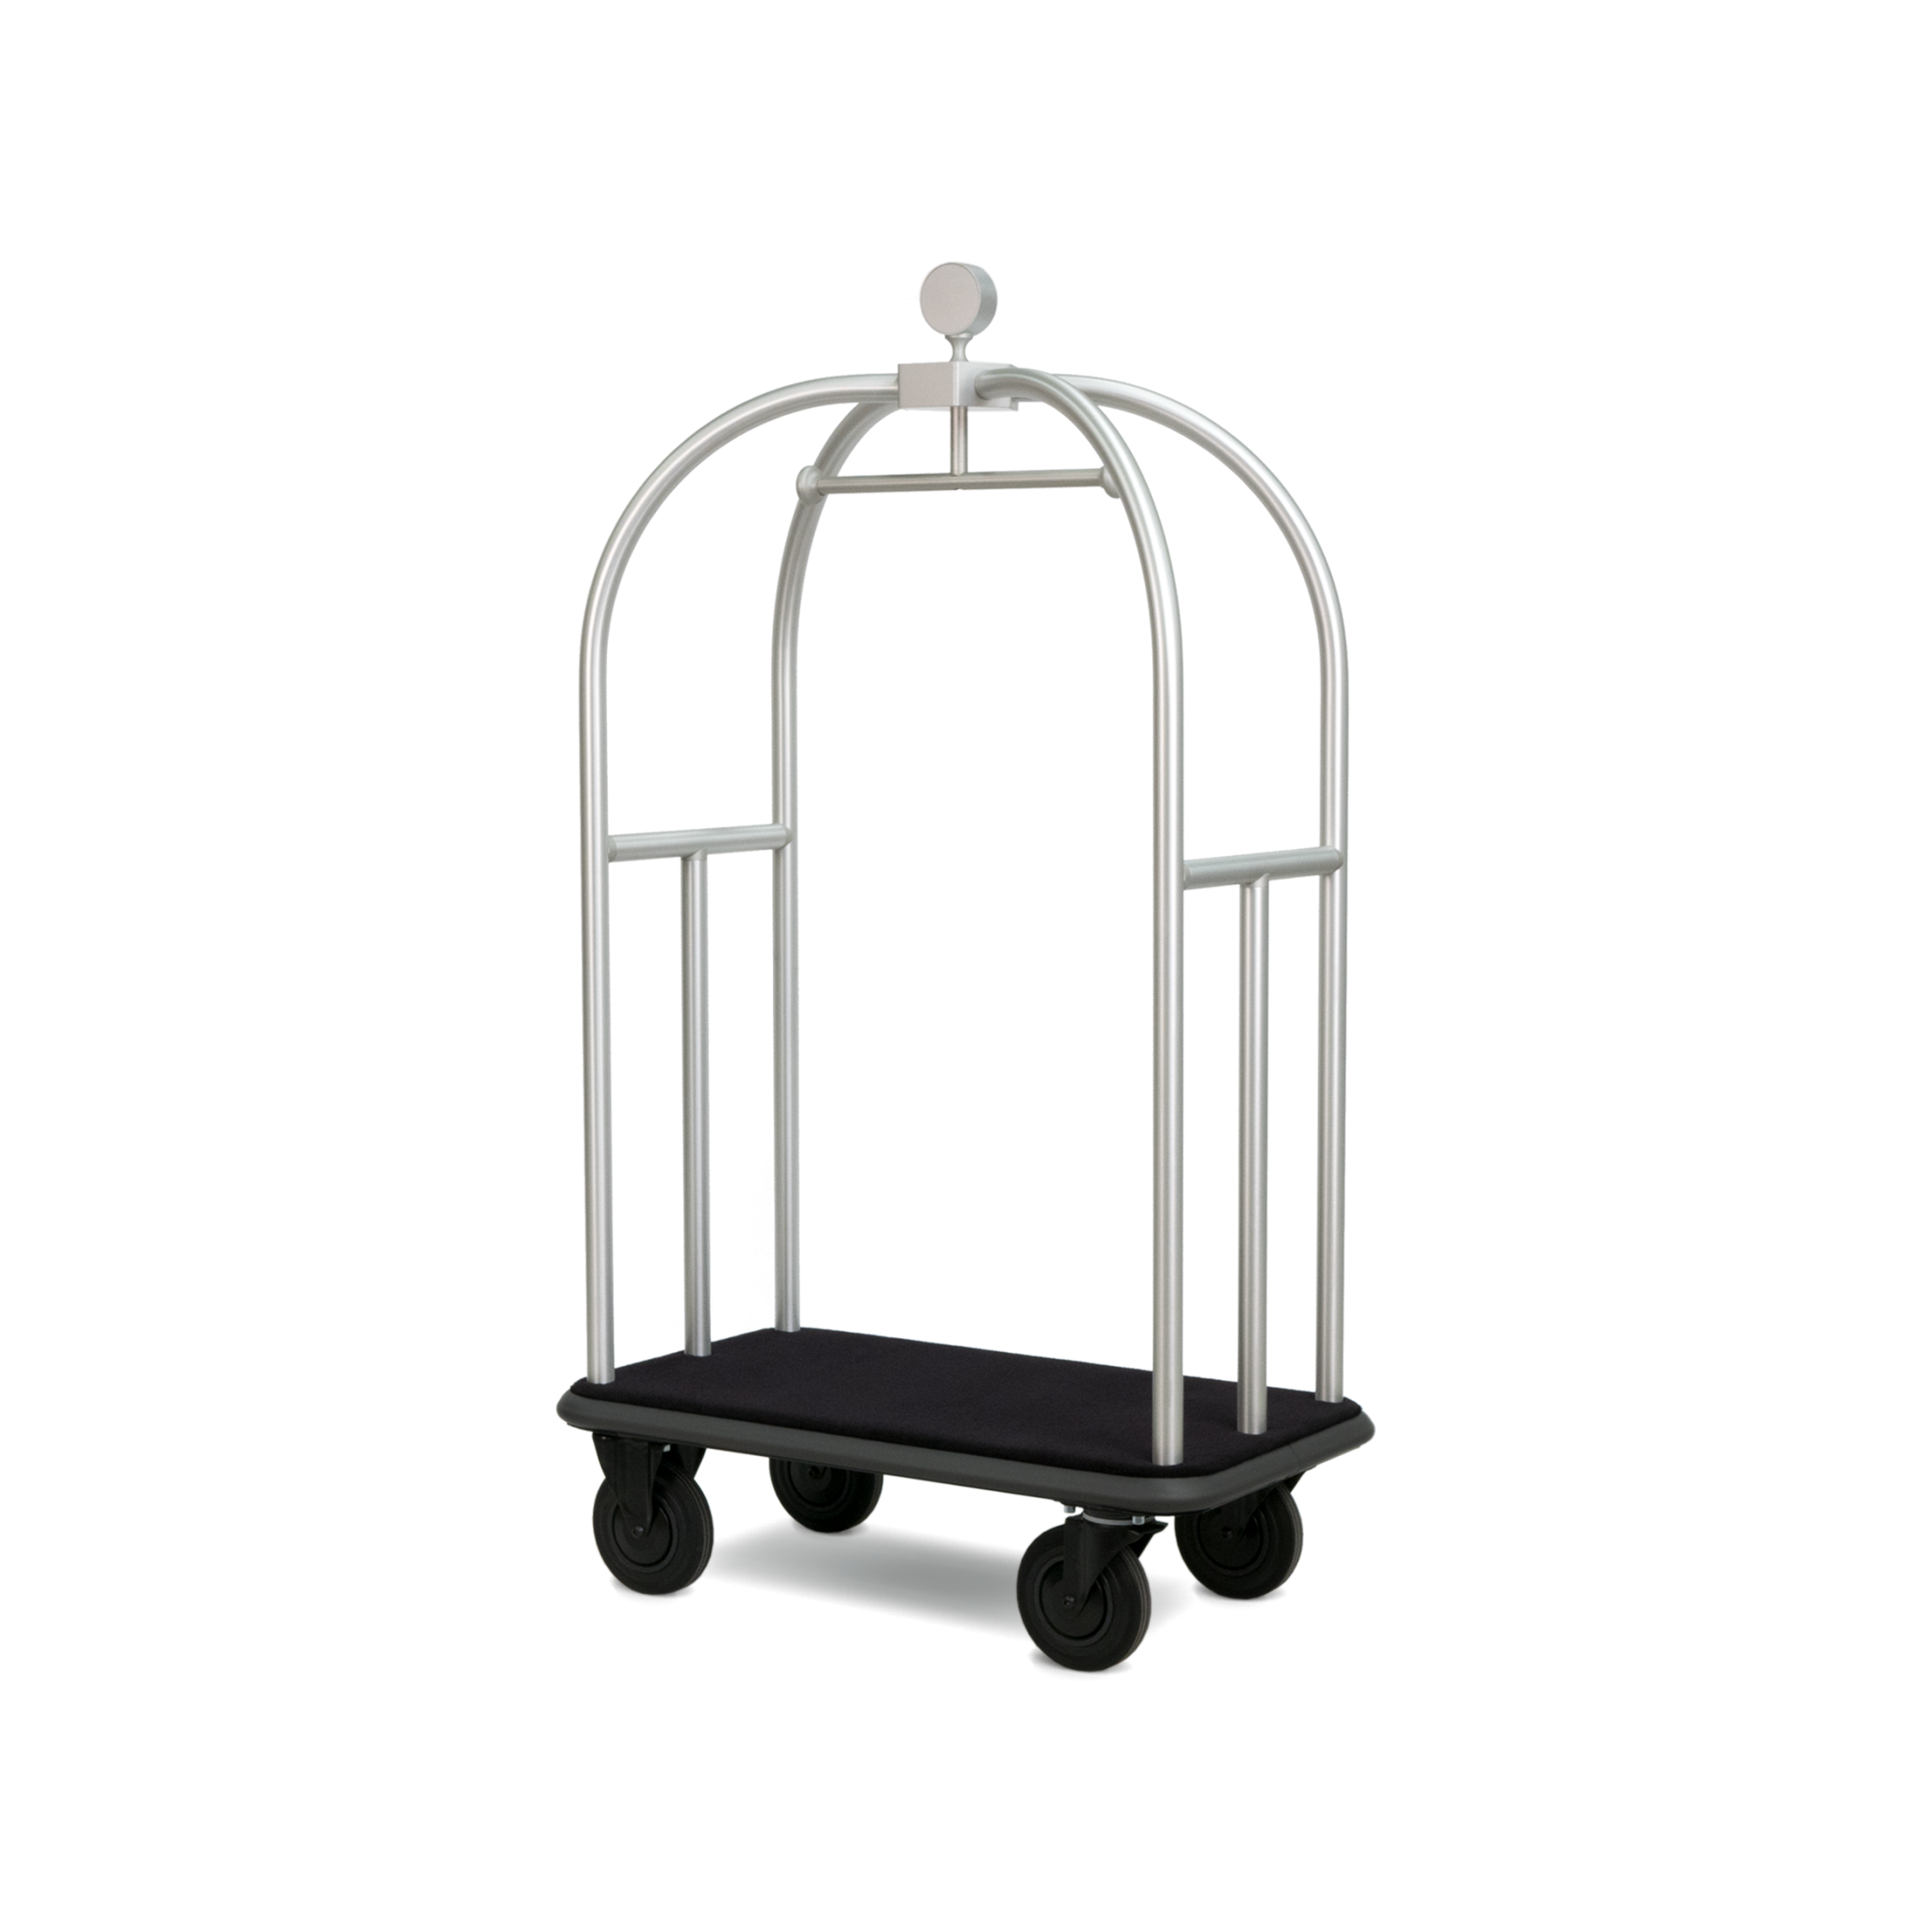 Everest 900 luggage trolley